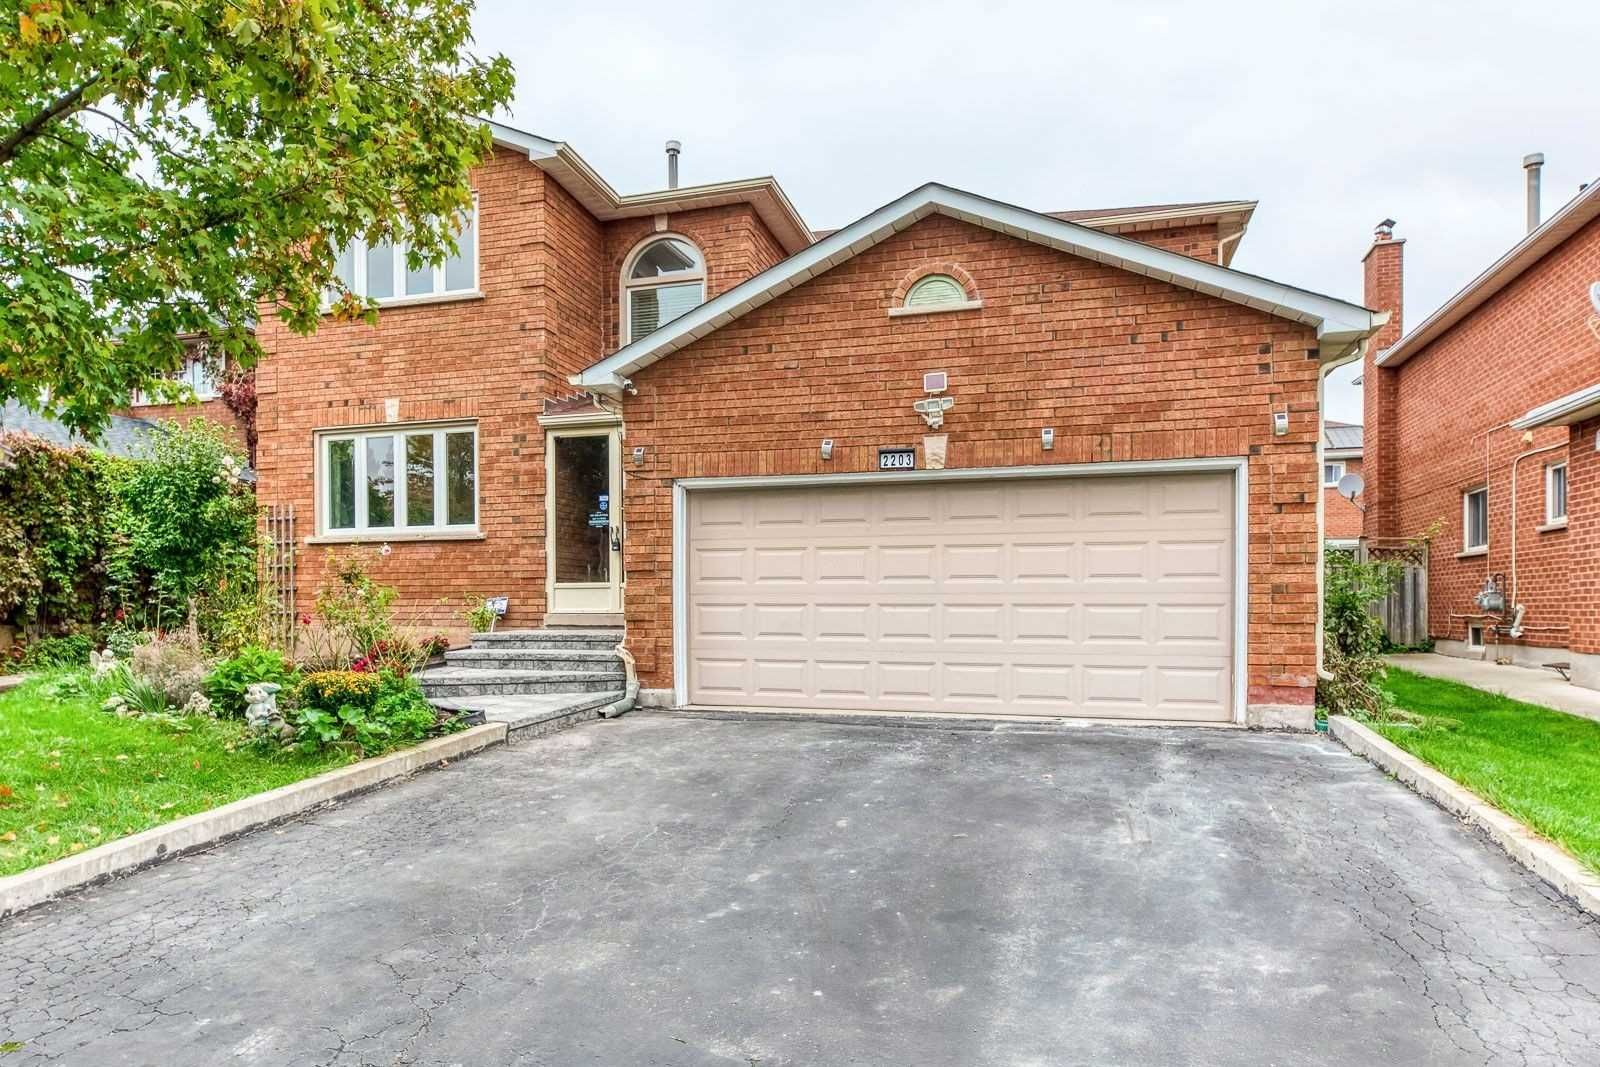 Main Photo: 2203 Golden Briar Trail in Oakville: Iroquois Ridge North House (2-Storey) for sale : MLS®# W5395140